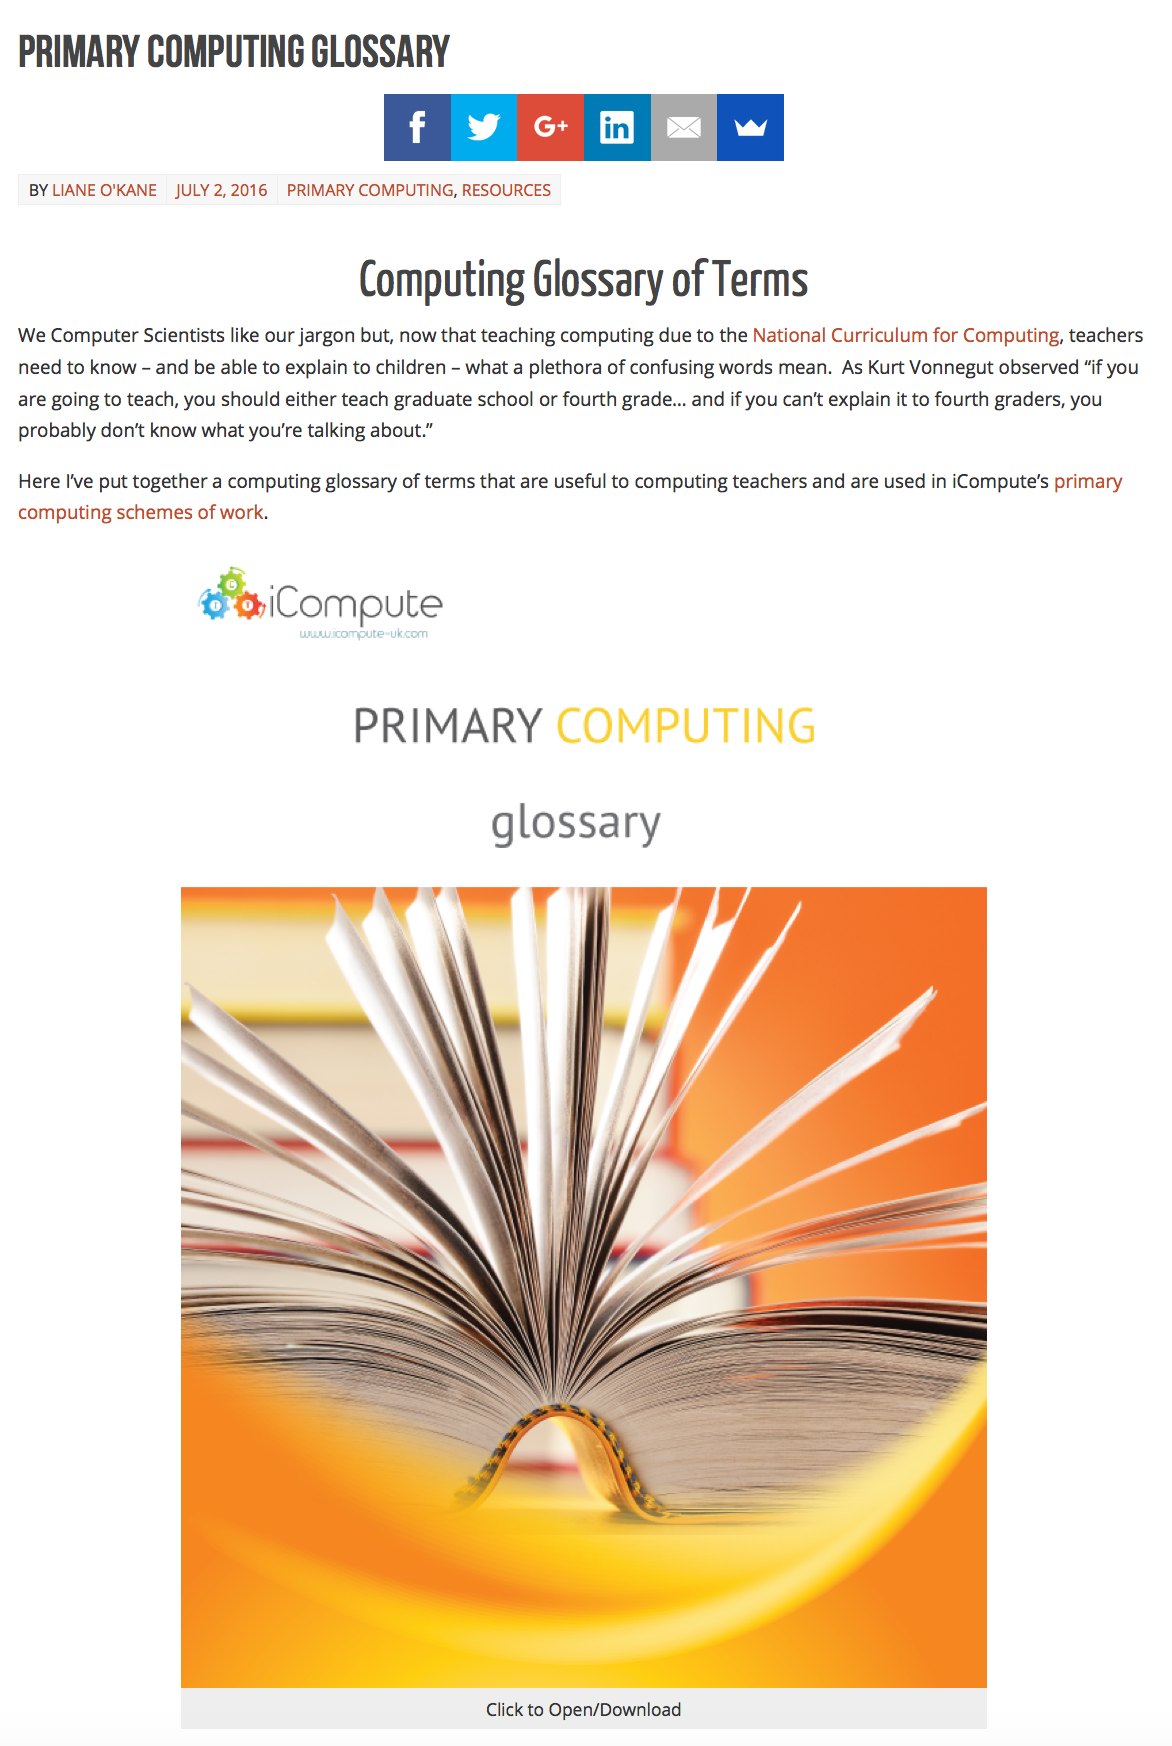 Primary Computing Resources